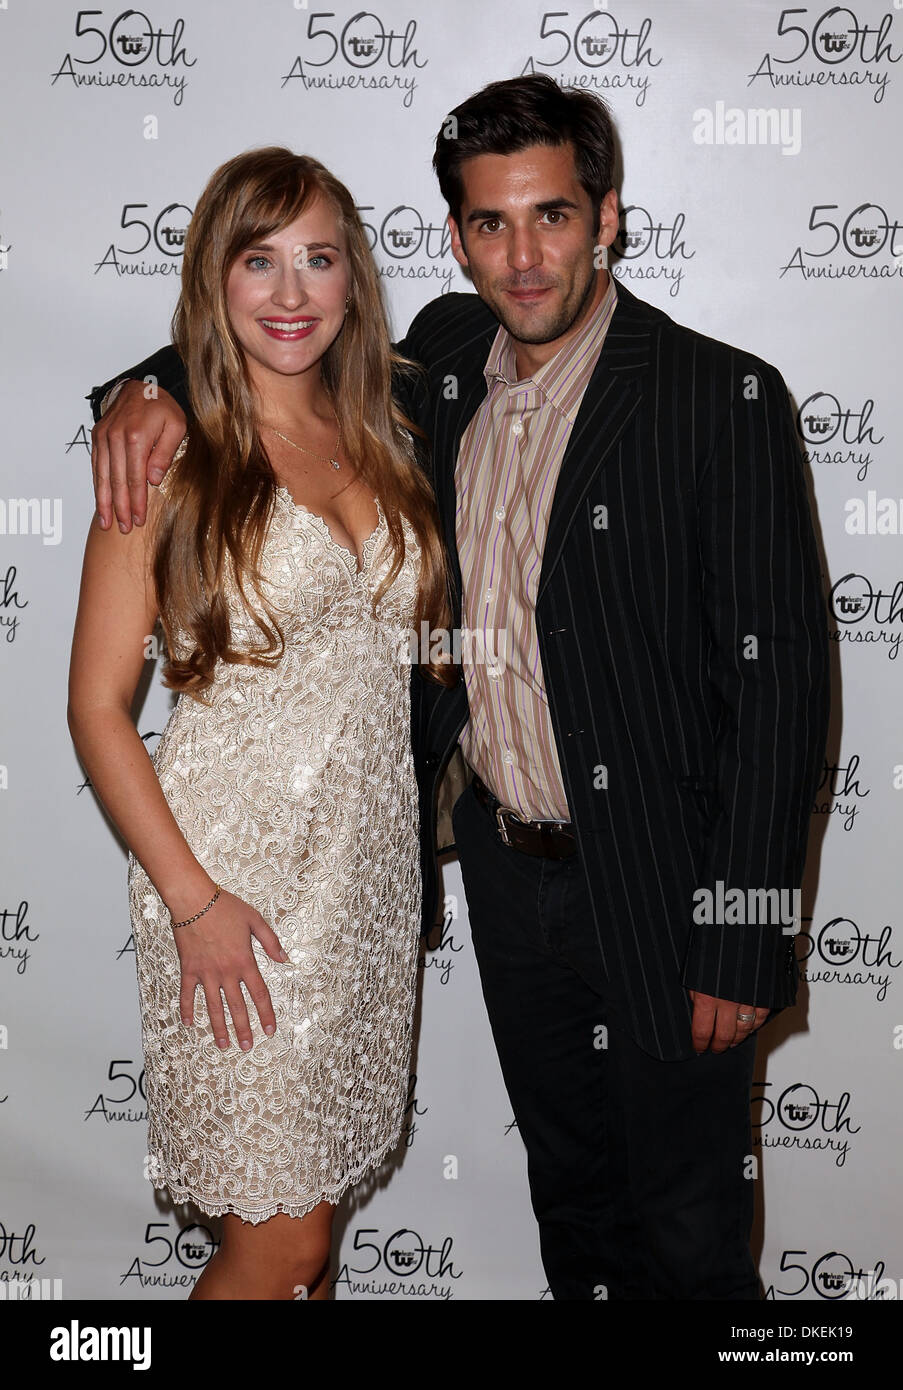 jordan bridges and carrie eastmanjordan bridges actor, jordan bridges instagram, jordan bridges height, jordan bridges, jordan bridges wife, jordan bridges father, jordan bridges imdb, jordan bridges family, jordan bridges net worth, jordan bridges movies, jordan bridges hallmark movies, jordan bridges parents, jordan bridges and carrie eastman, jordan bridges movies and tv shows, jordan bridges wikipedia, jordan bridges wiki, jordan bridges bio, jordan bridges age, jordan bridges gone, jordan bridges dad